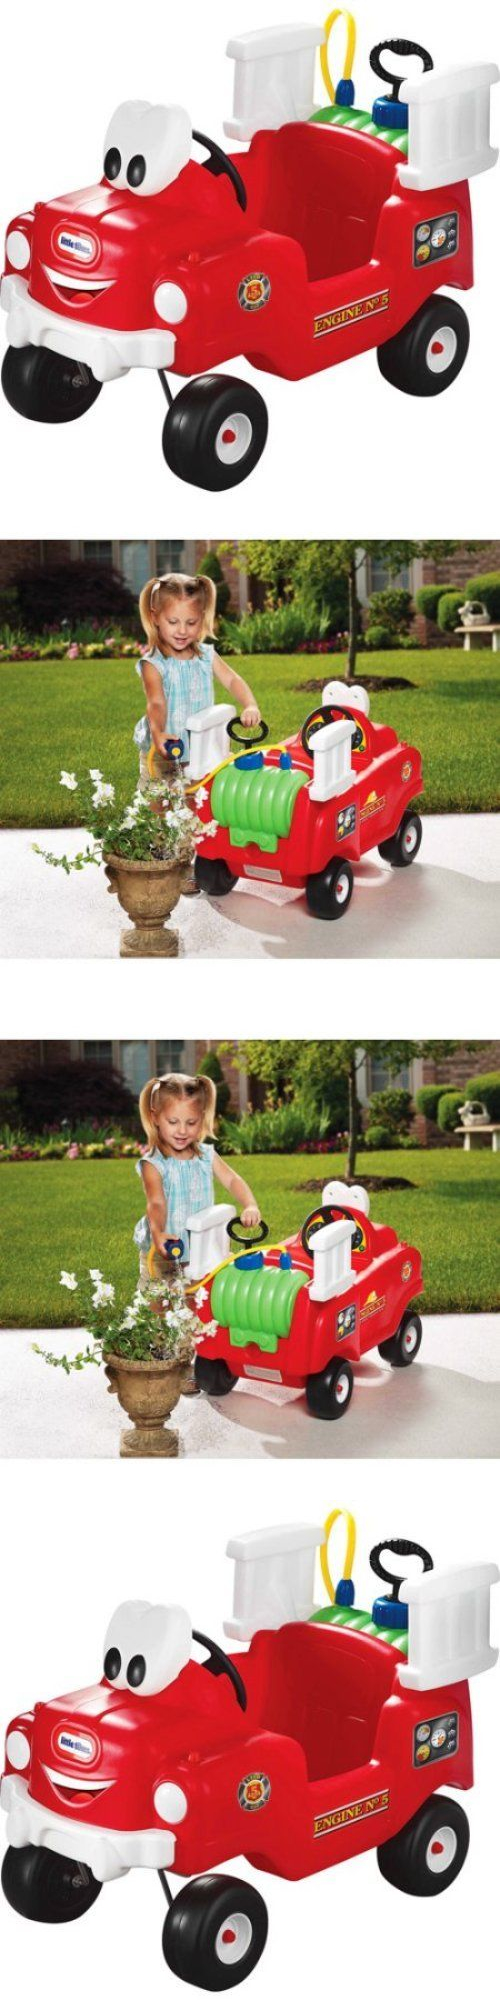 Little car toys  Child Size  Little Tikes Spray And Rescue Fire Truck Fun Ride